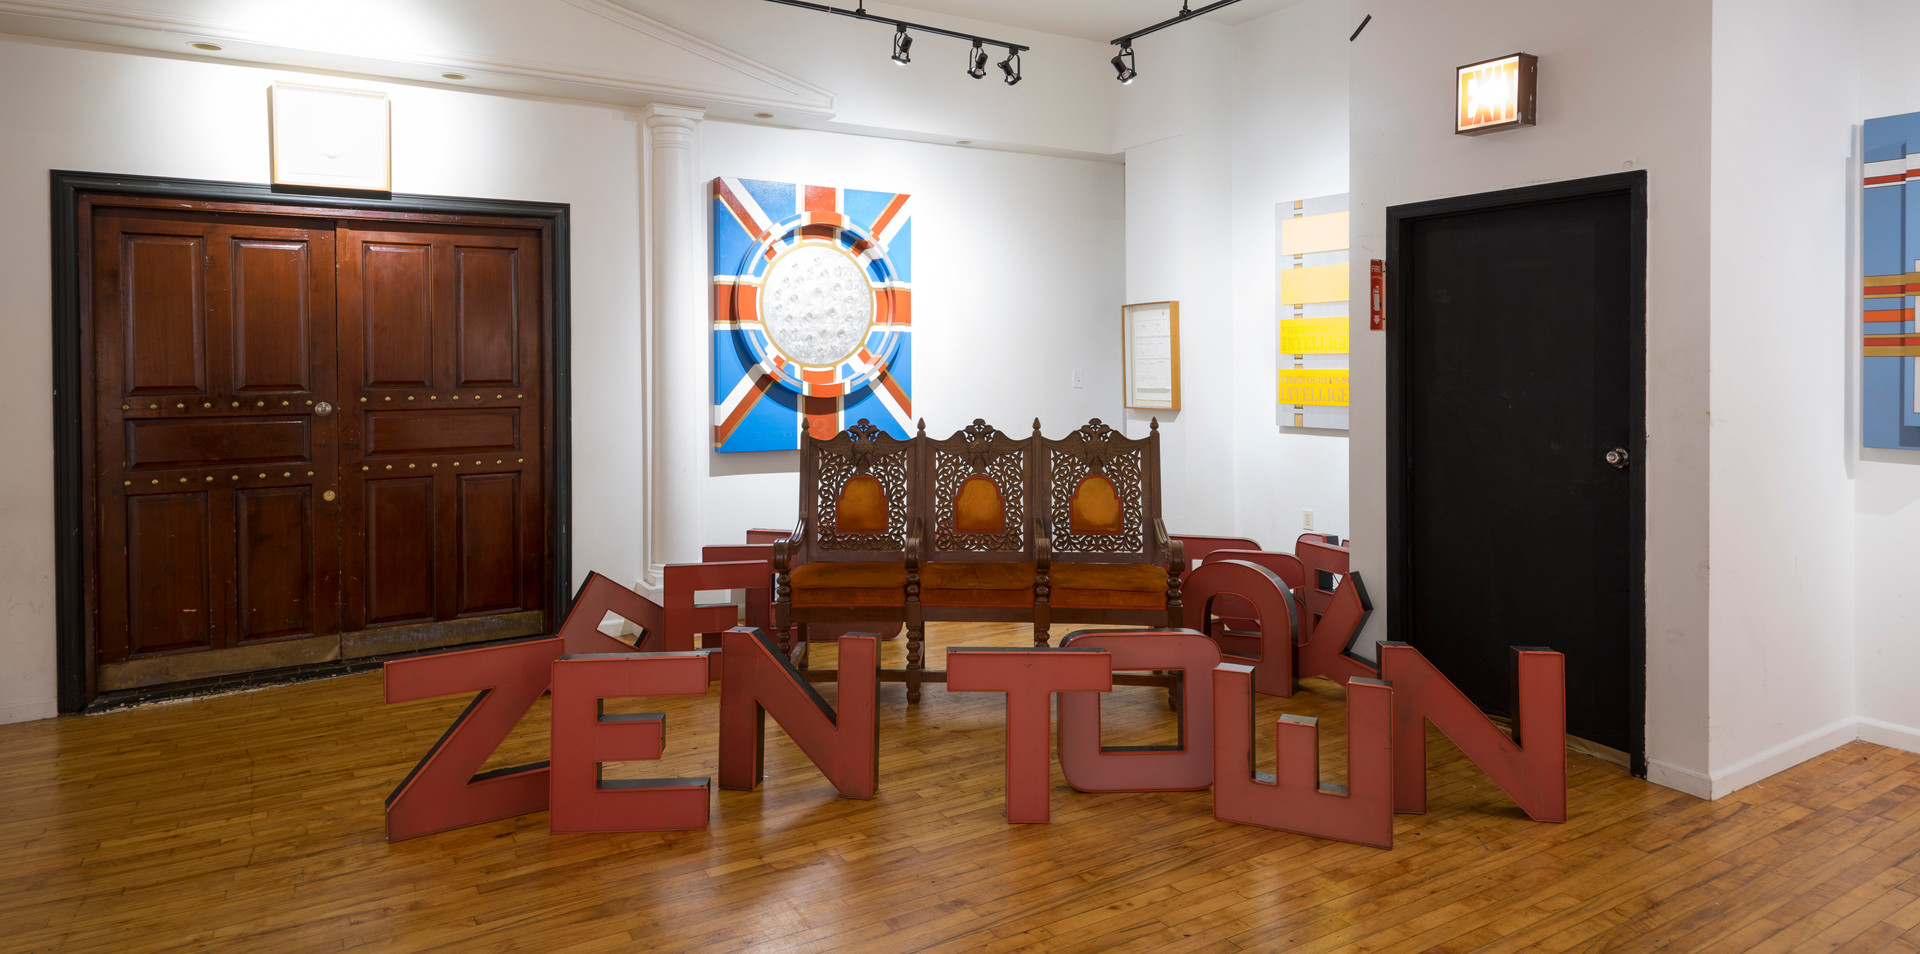 Project For Living Artists Gallery AKA Zen Town